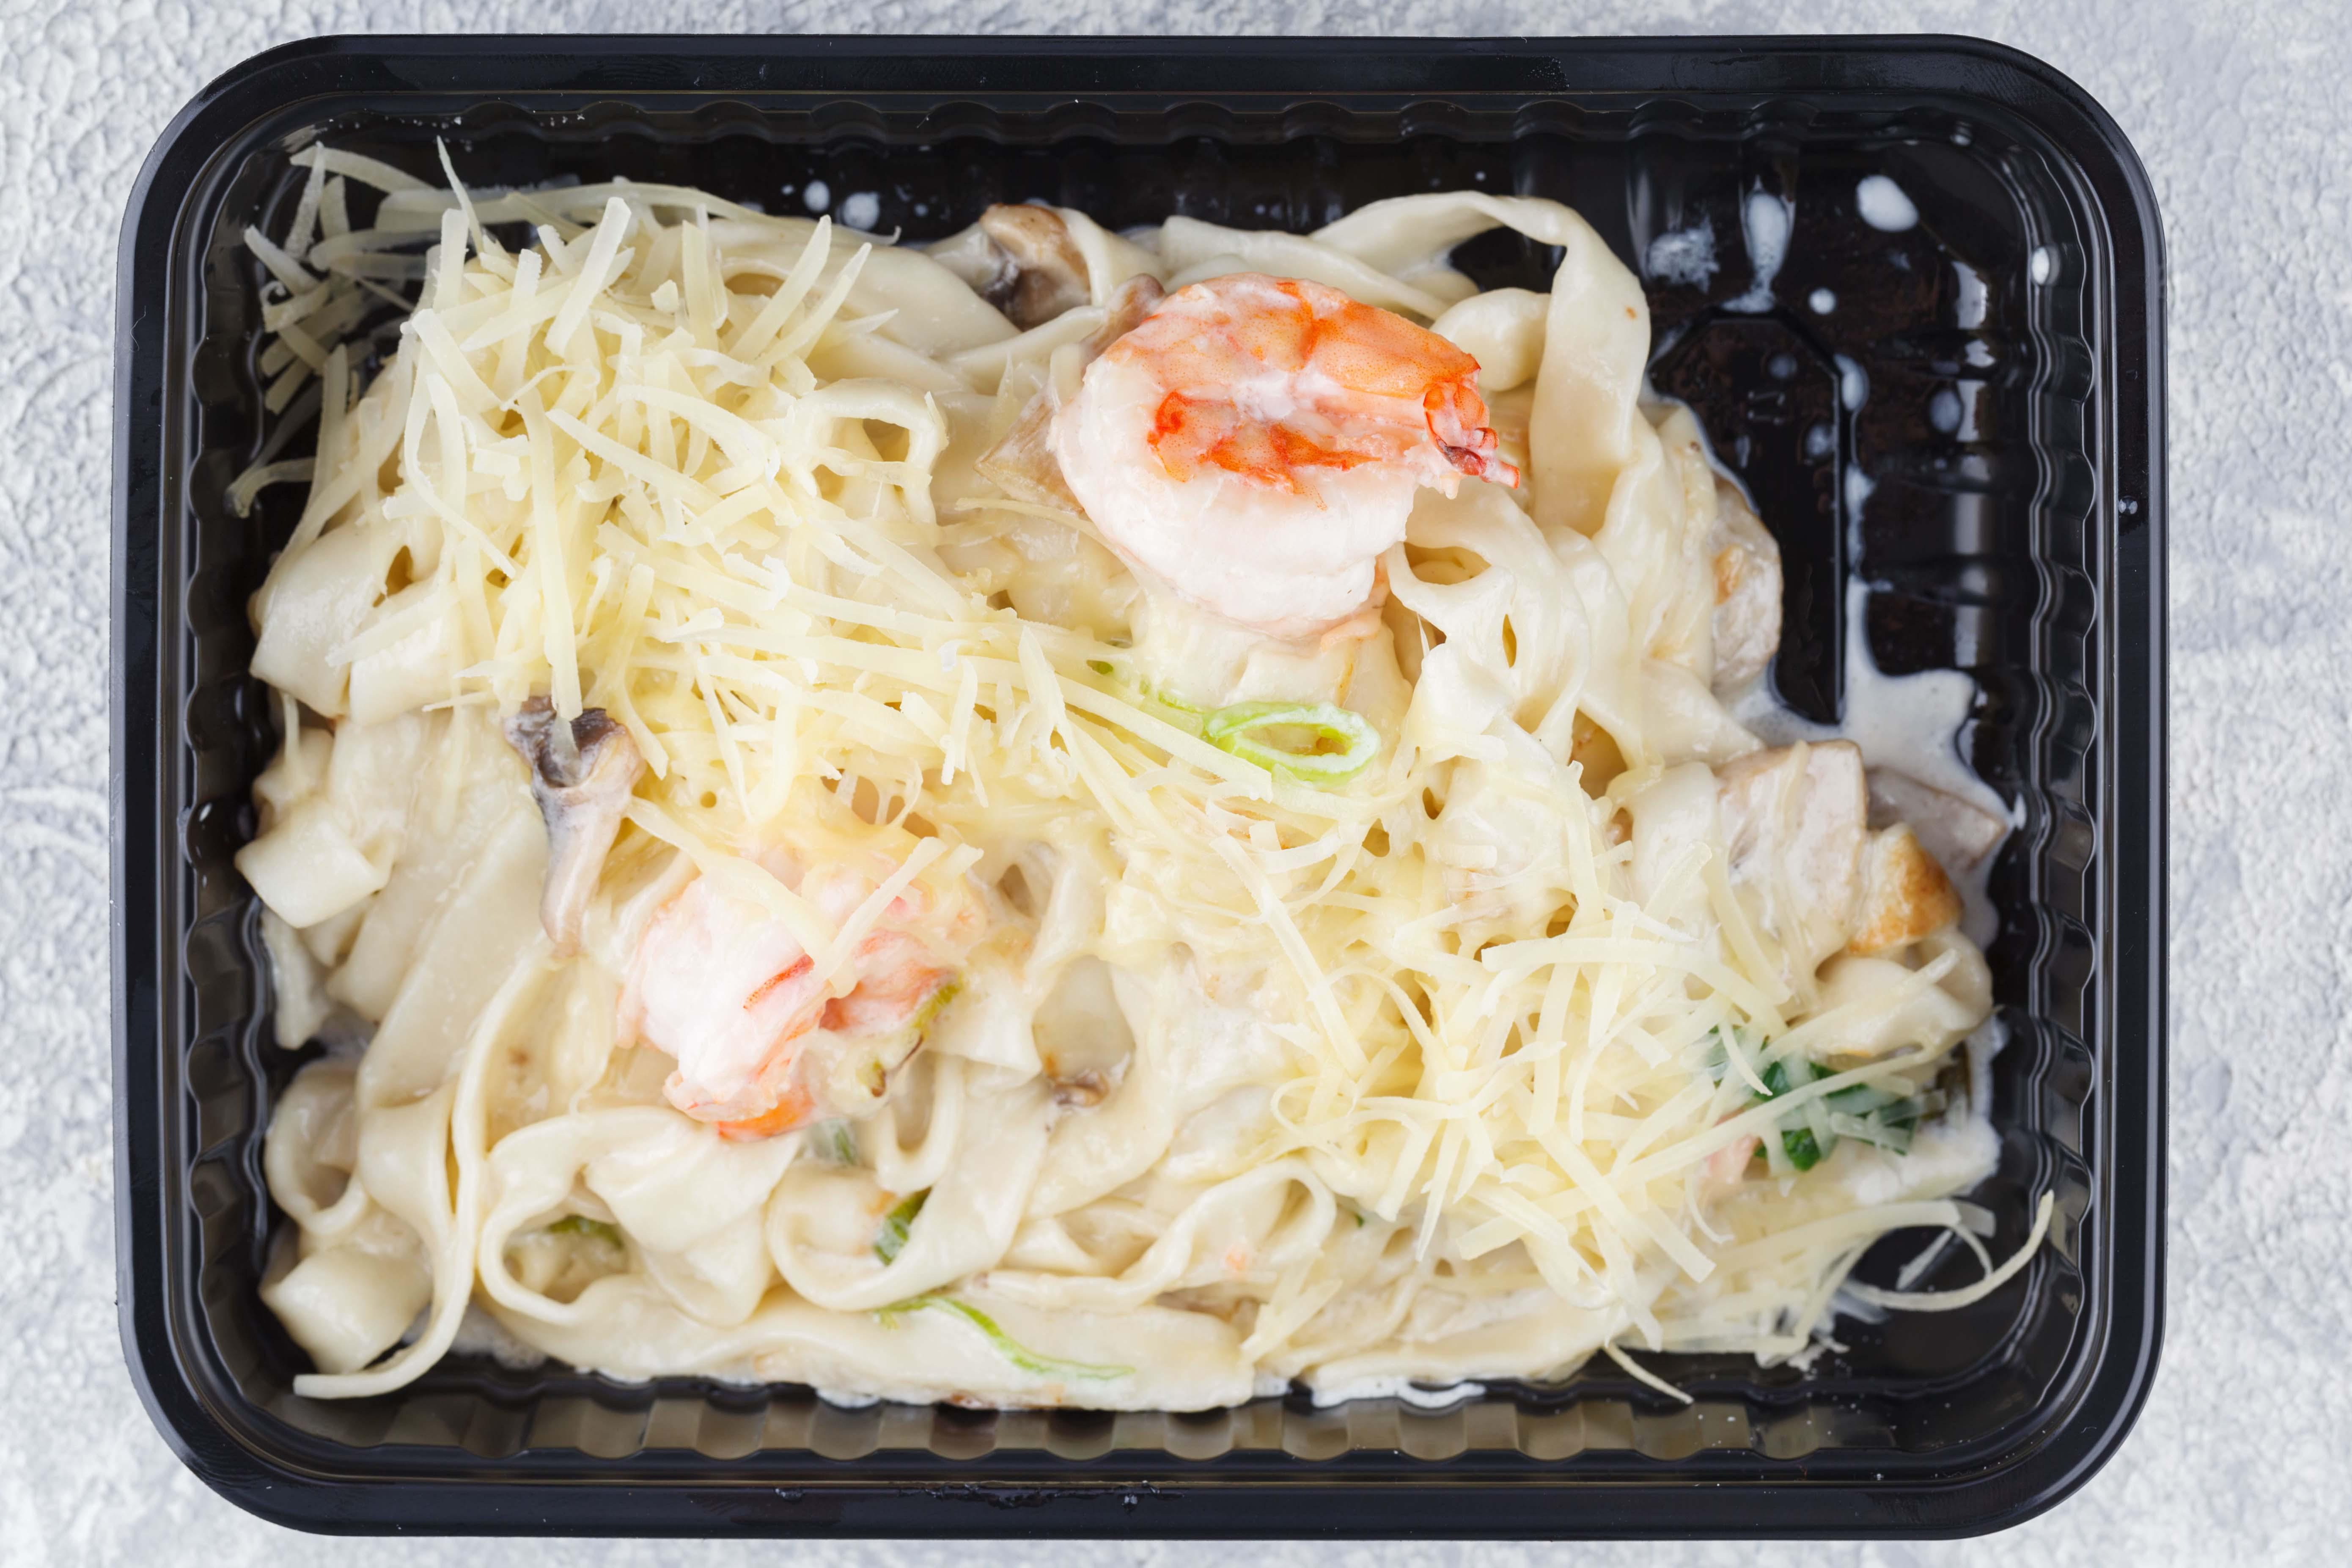 Fettuccine with seafood